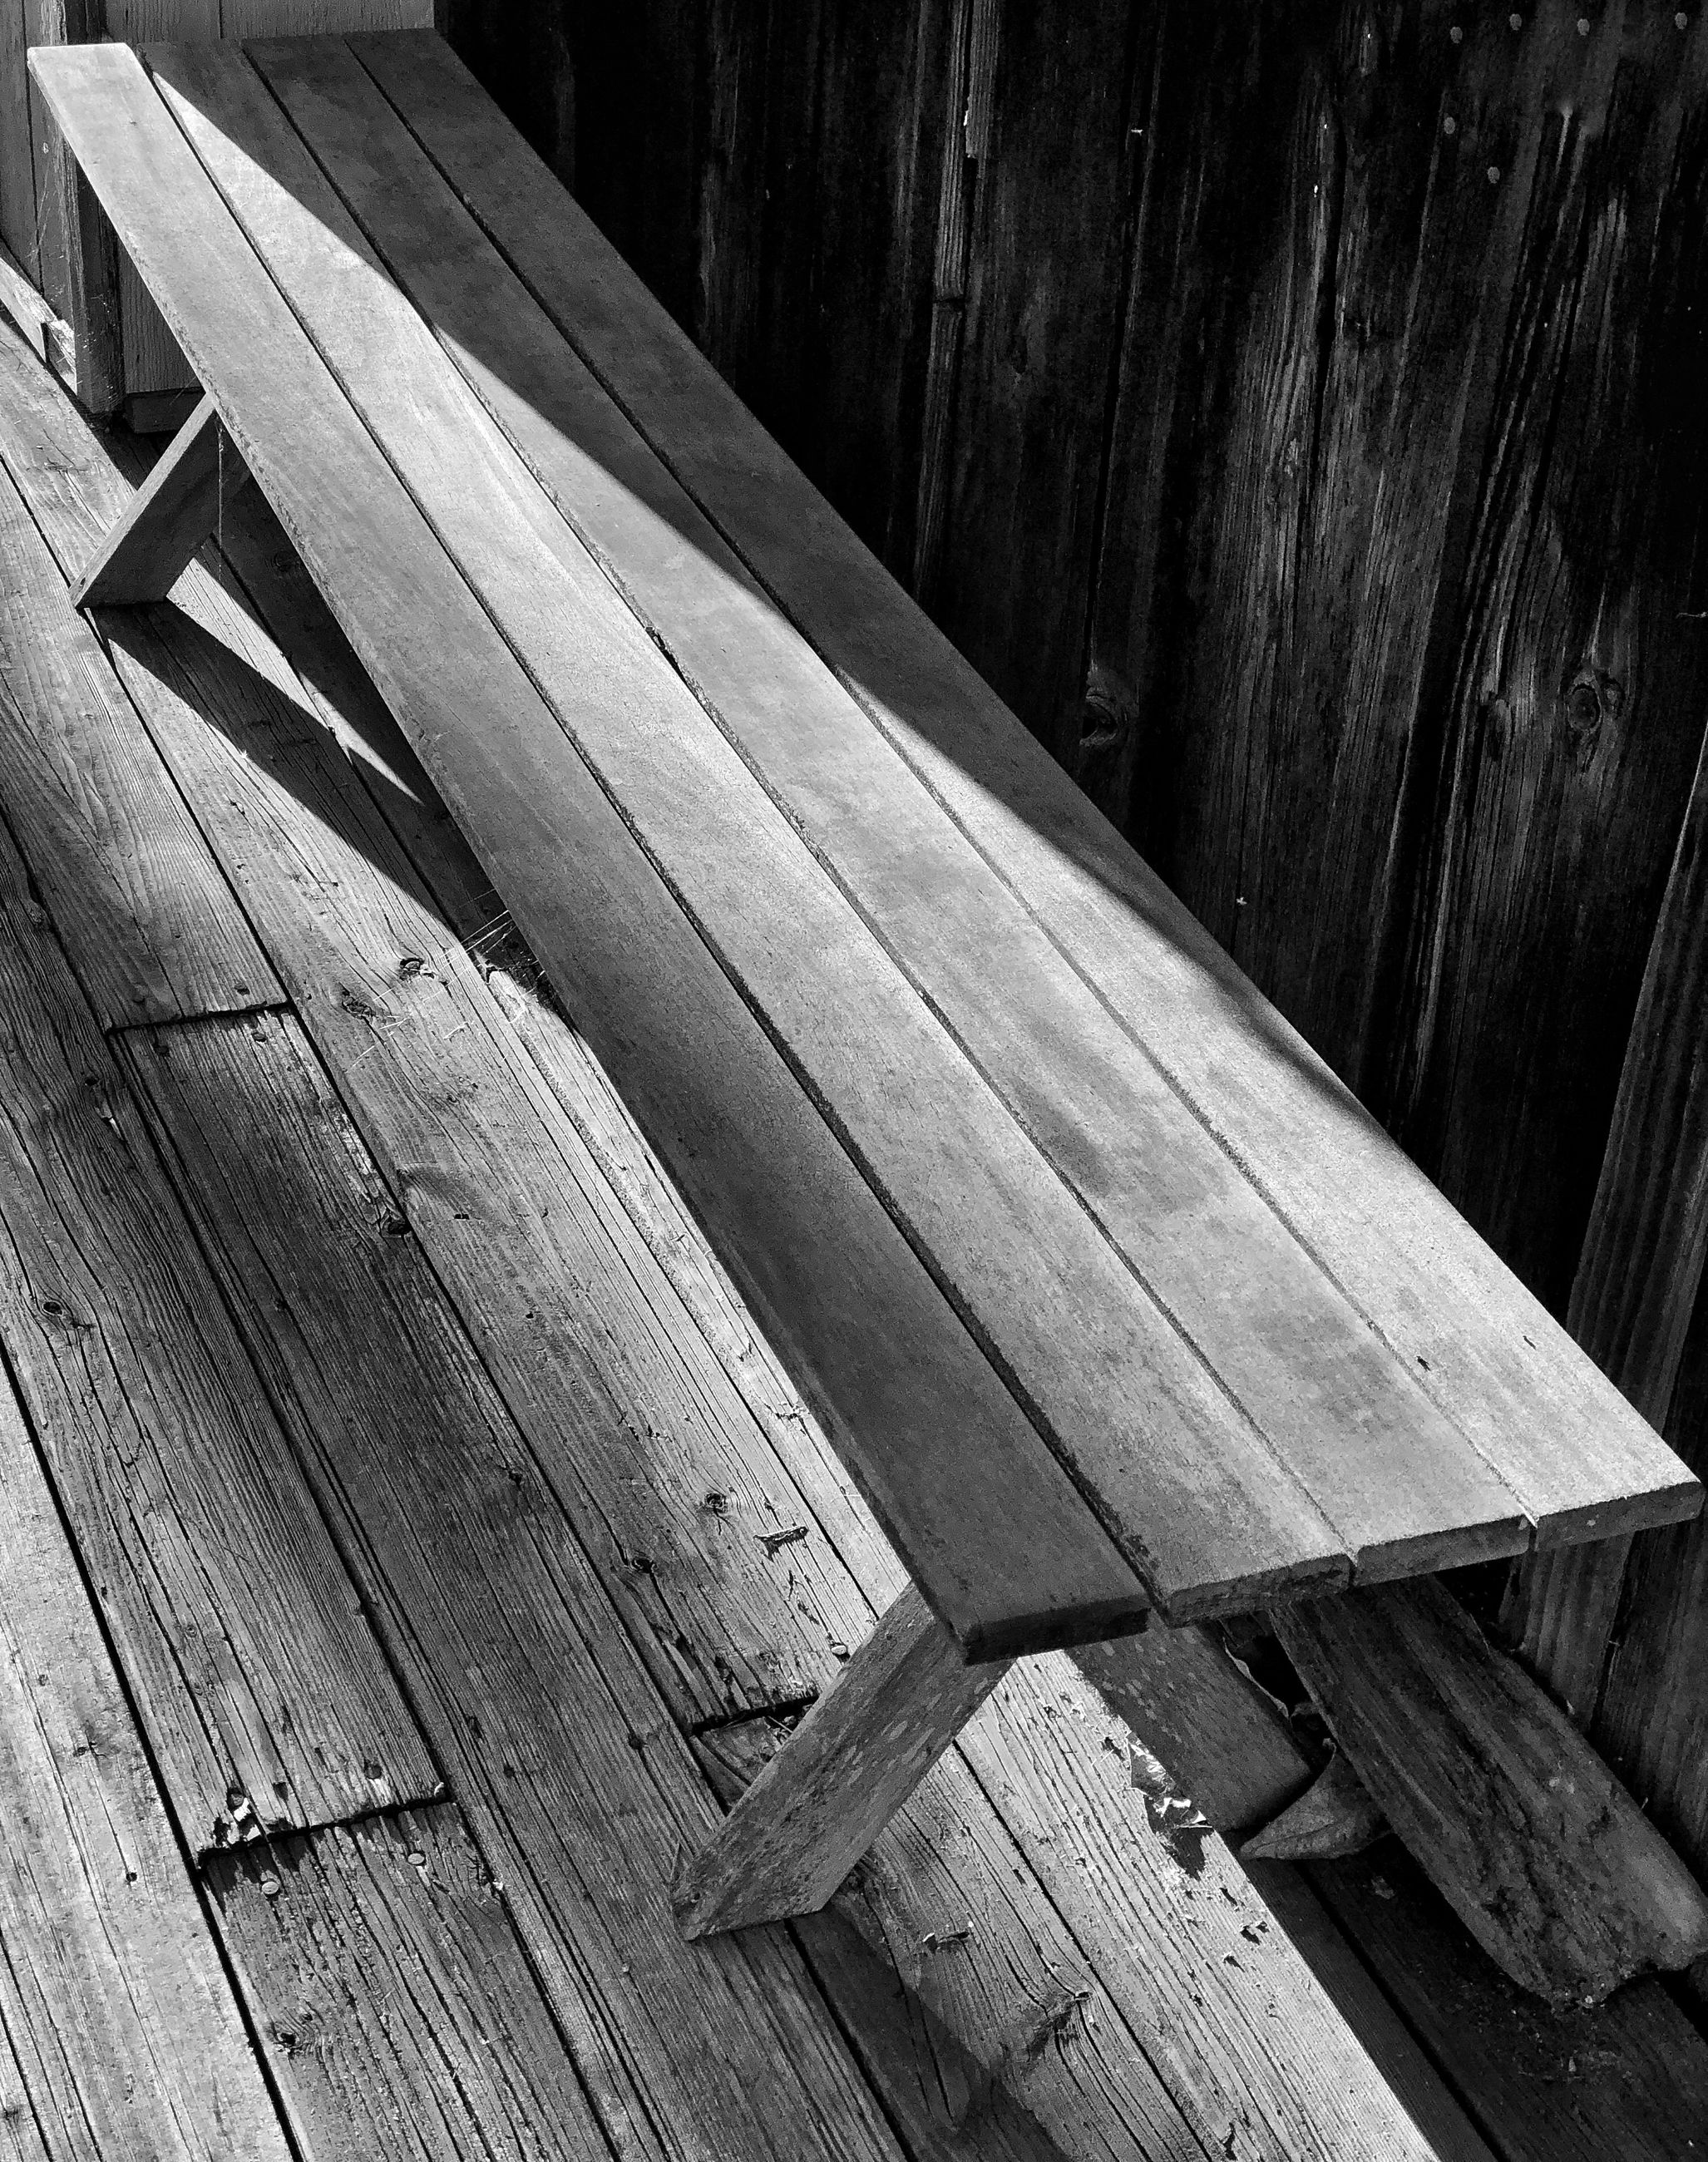 wood - material, no people, plank, high angle view, day, seat, wood, pattern, indoors, built structure, bench, empty, architecture, absence, old, close-up, textured, weathered, floorboard